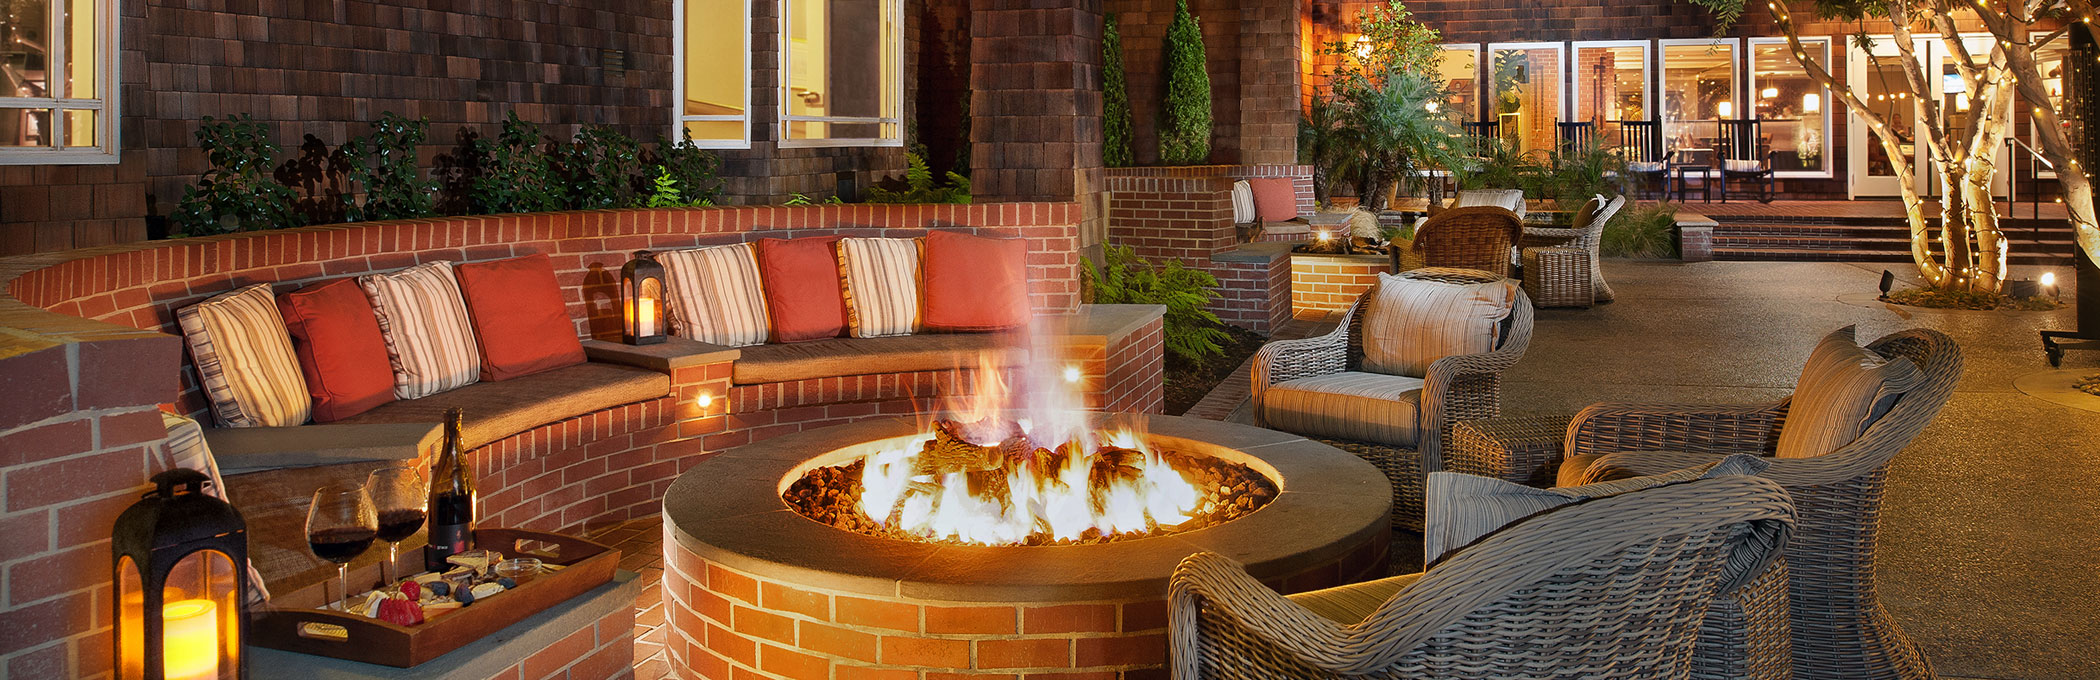 brick seating area with pillows around a fire pit